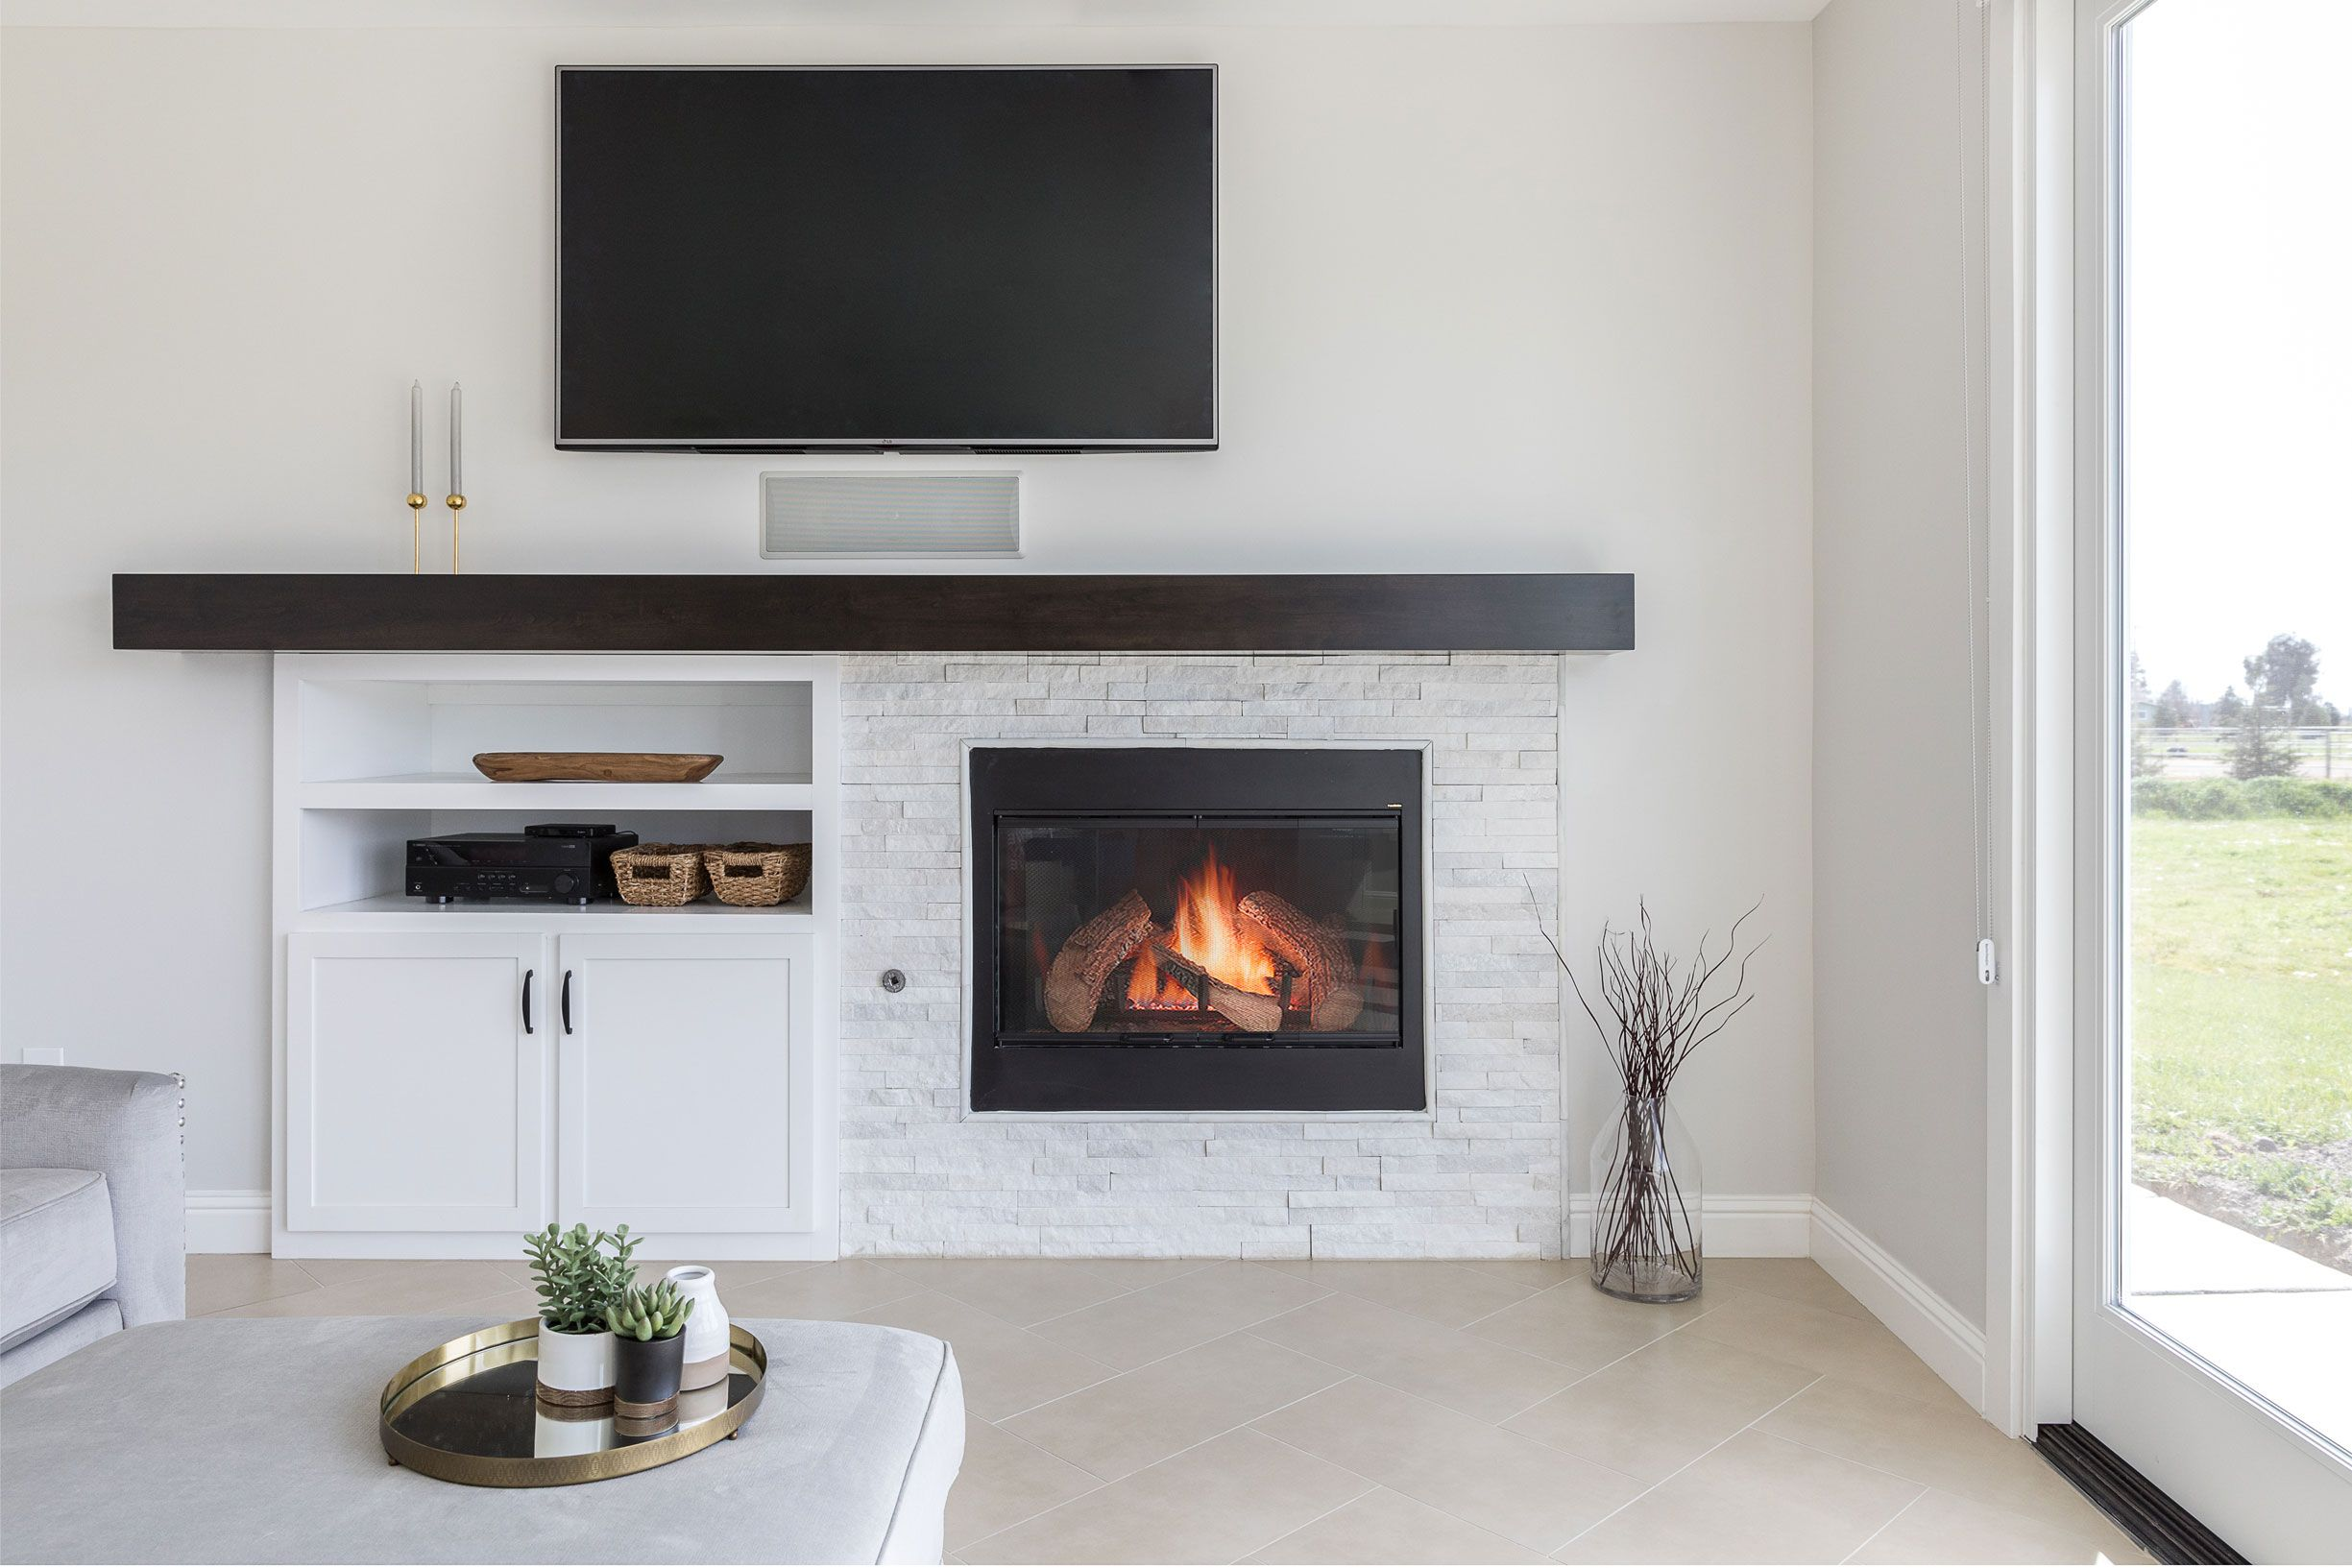 Built In Entertainment Center And Fireplace For A Modern Farmhouse Kitchen Remodel Design By Rebecca Ward Fireplace Remodel Kitchen Remodel Design White Bath